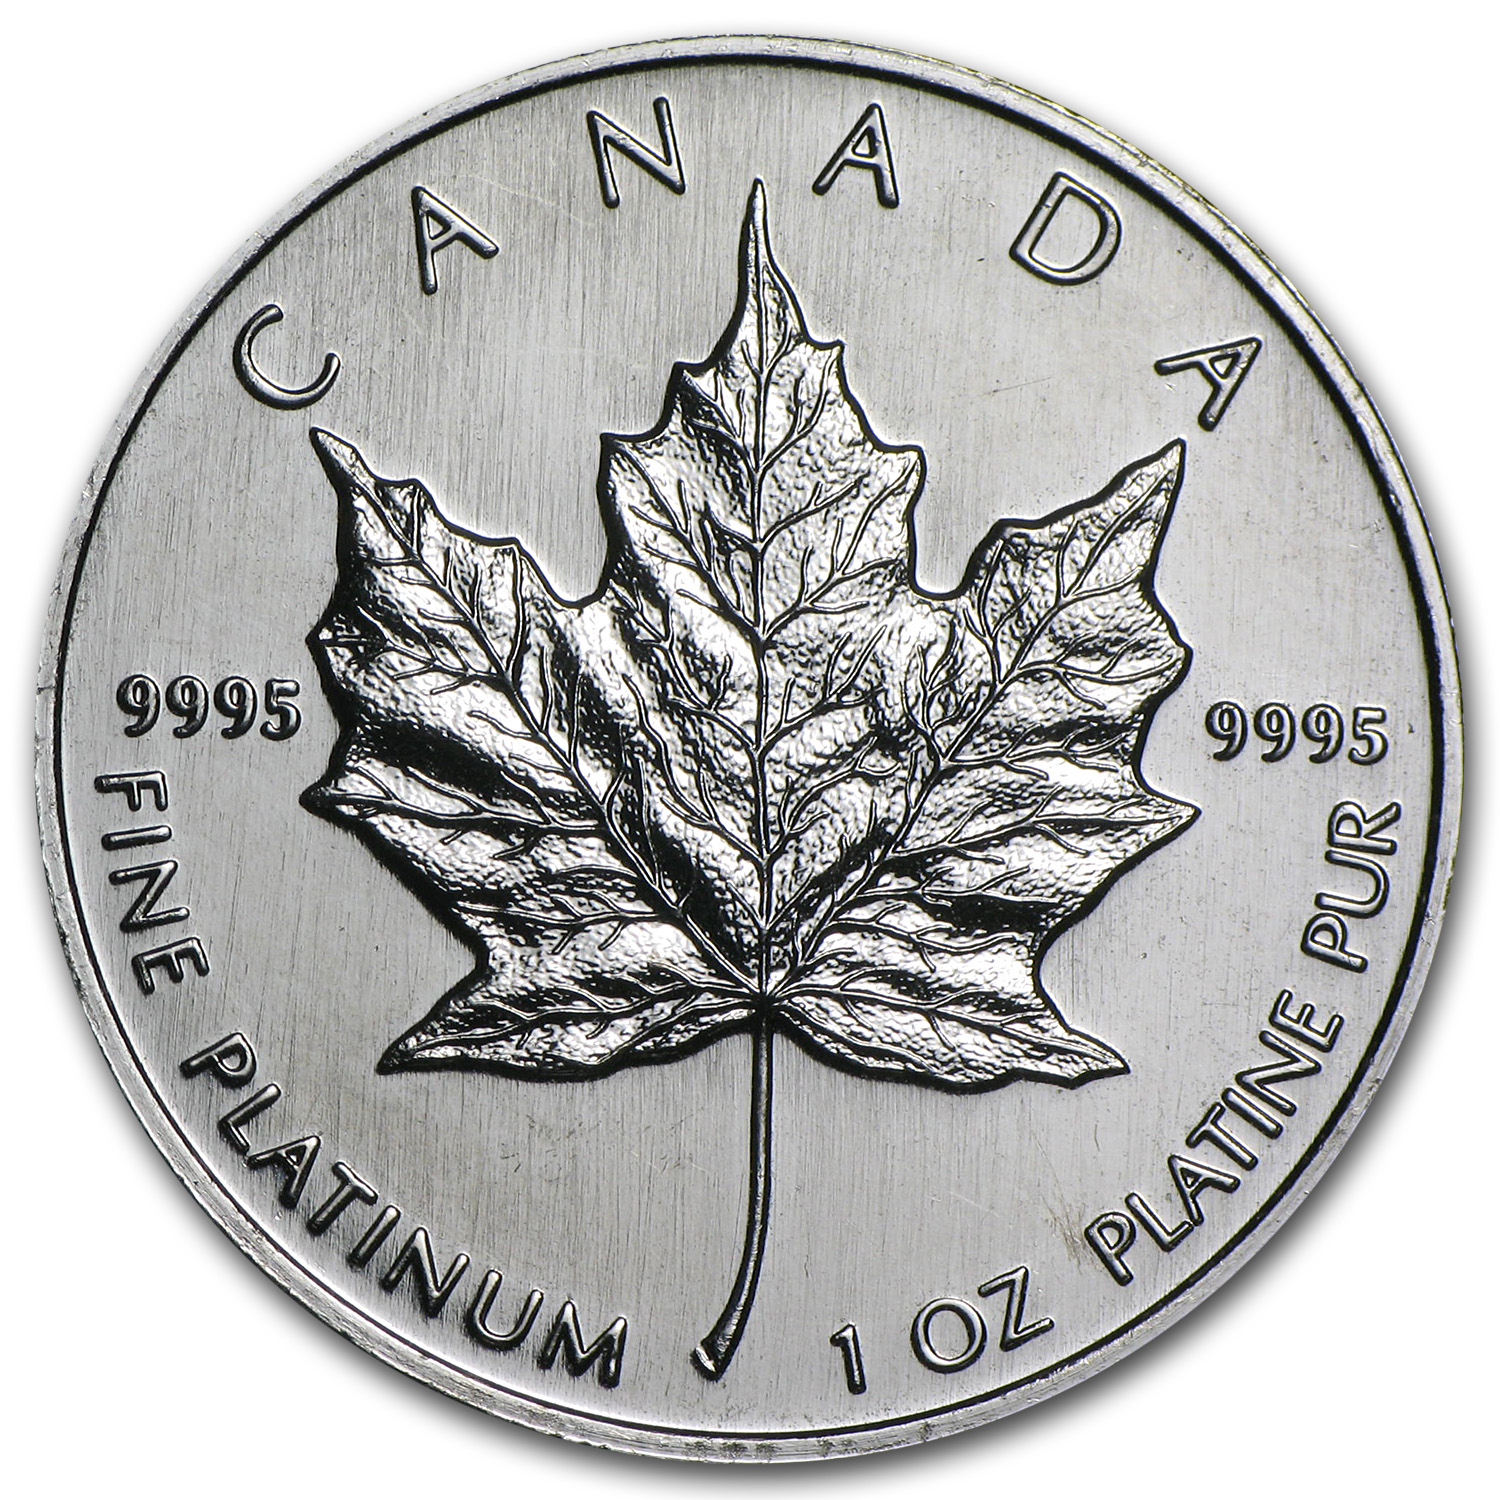 1995 Canada 1 oz Platinum Maple Leaf BU